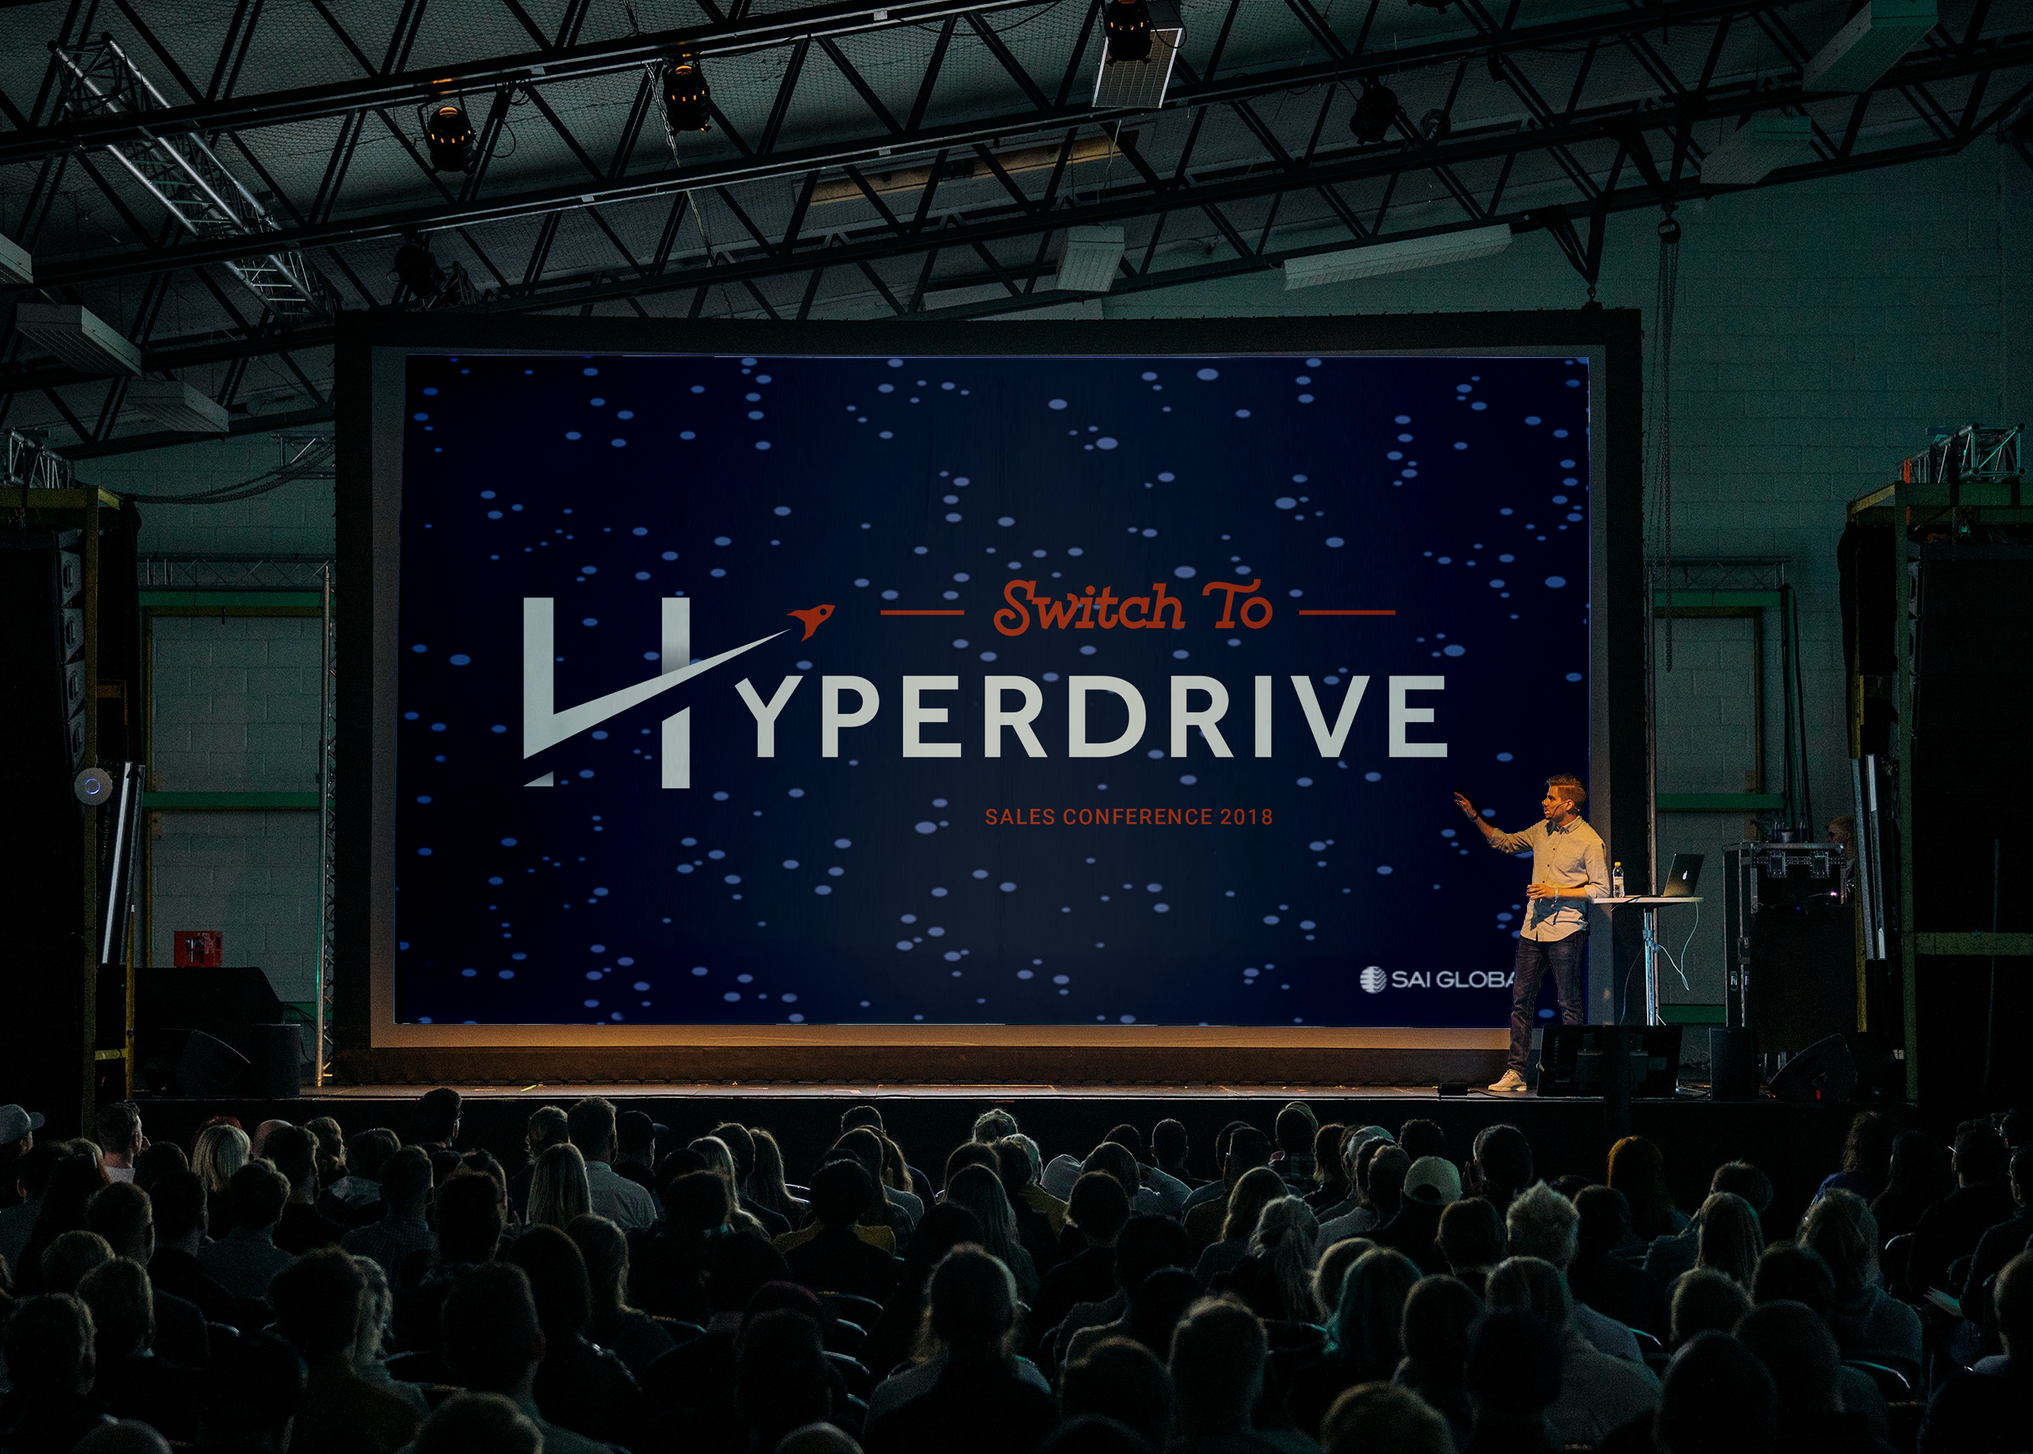 """SAI Global Sales Conference in Australia: """"Switch to Hyperdrive"""""""